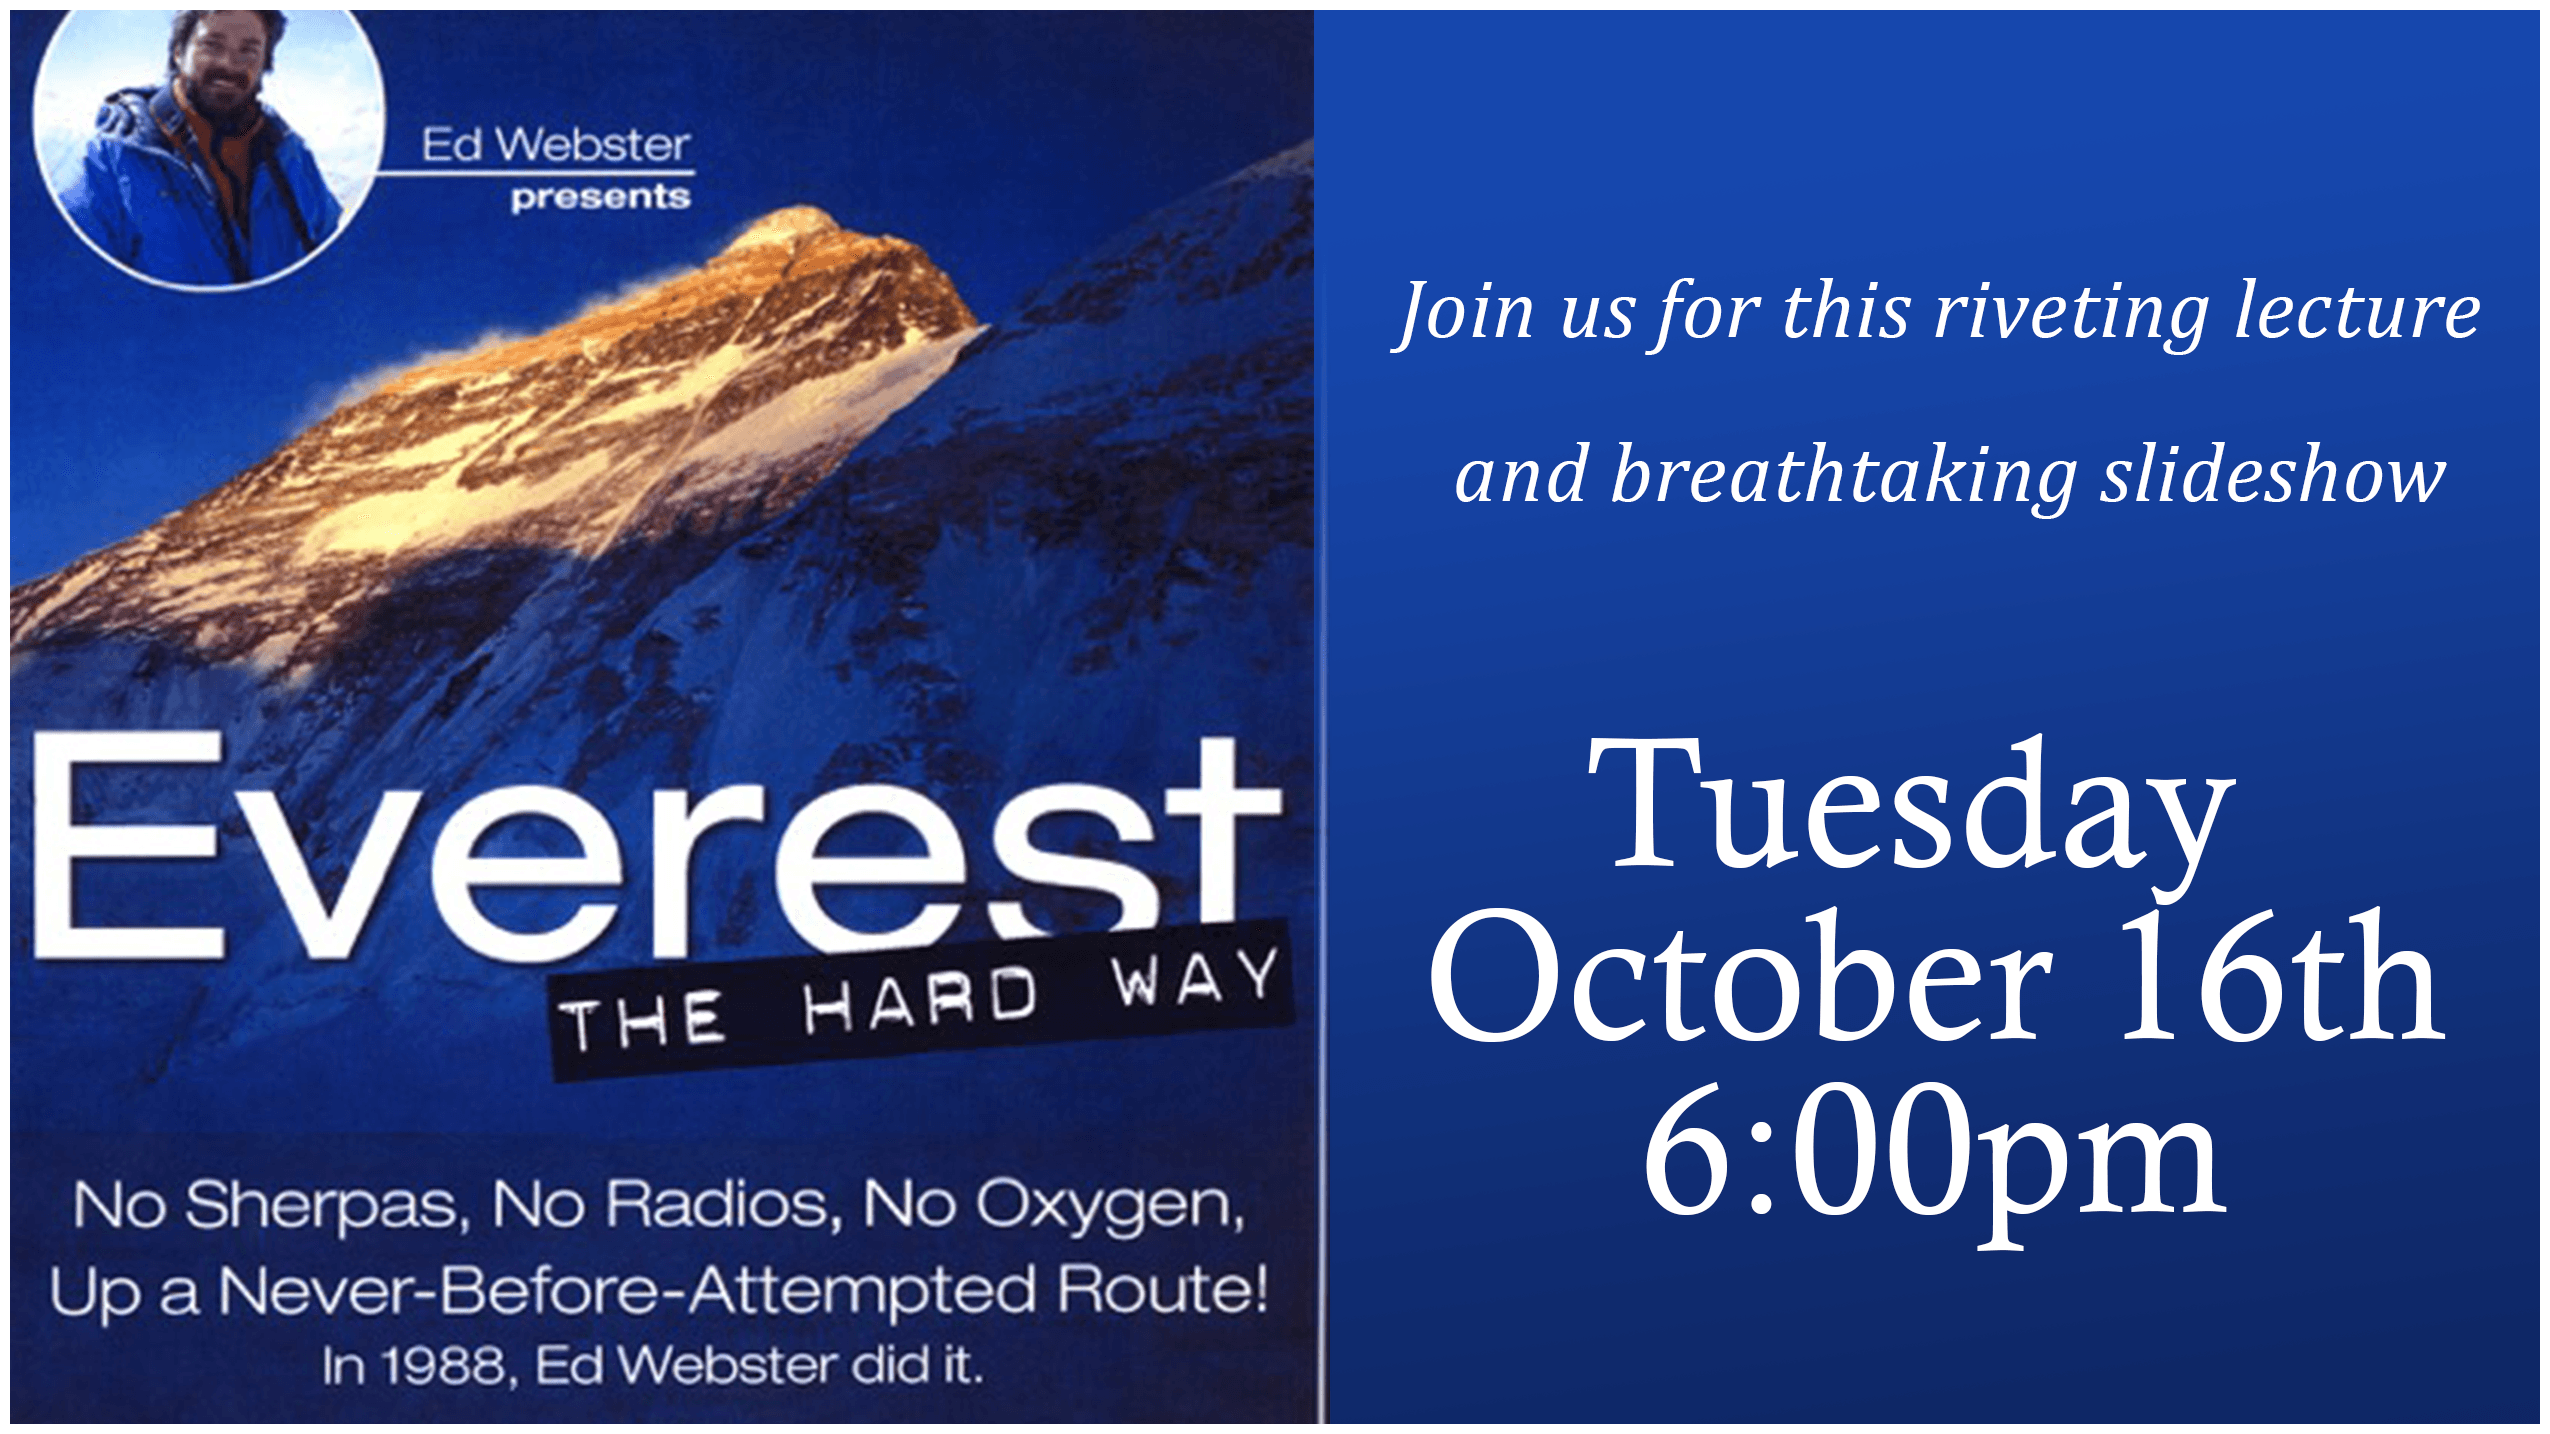 Everest lecture and slideshow Tuesday October 16 6pm